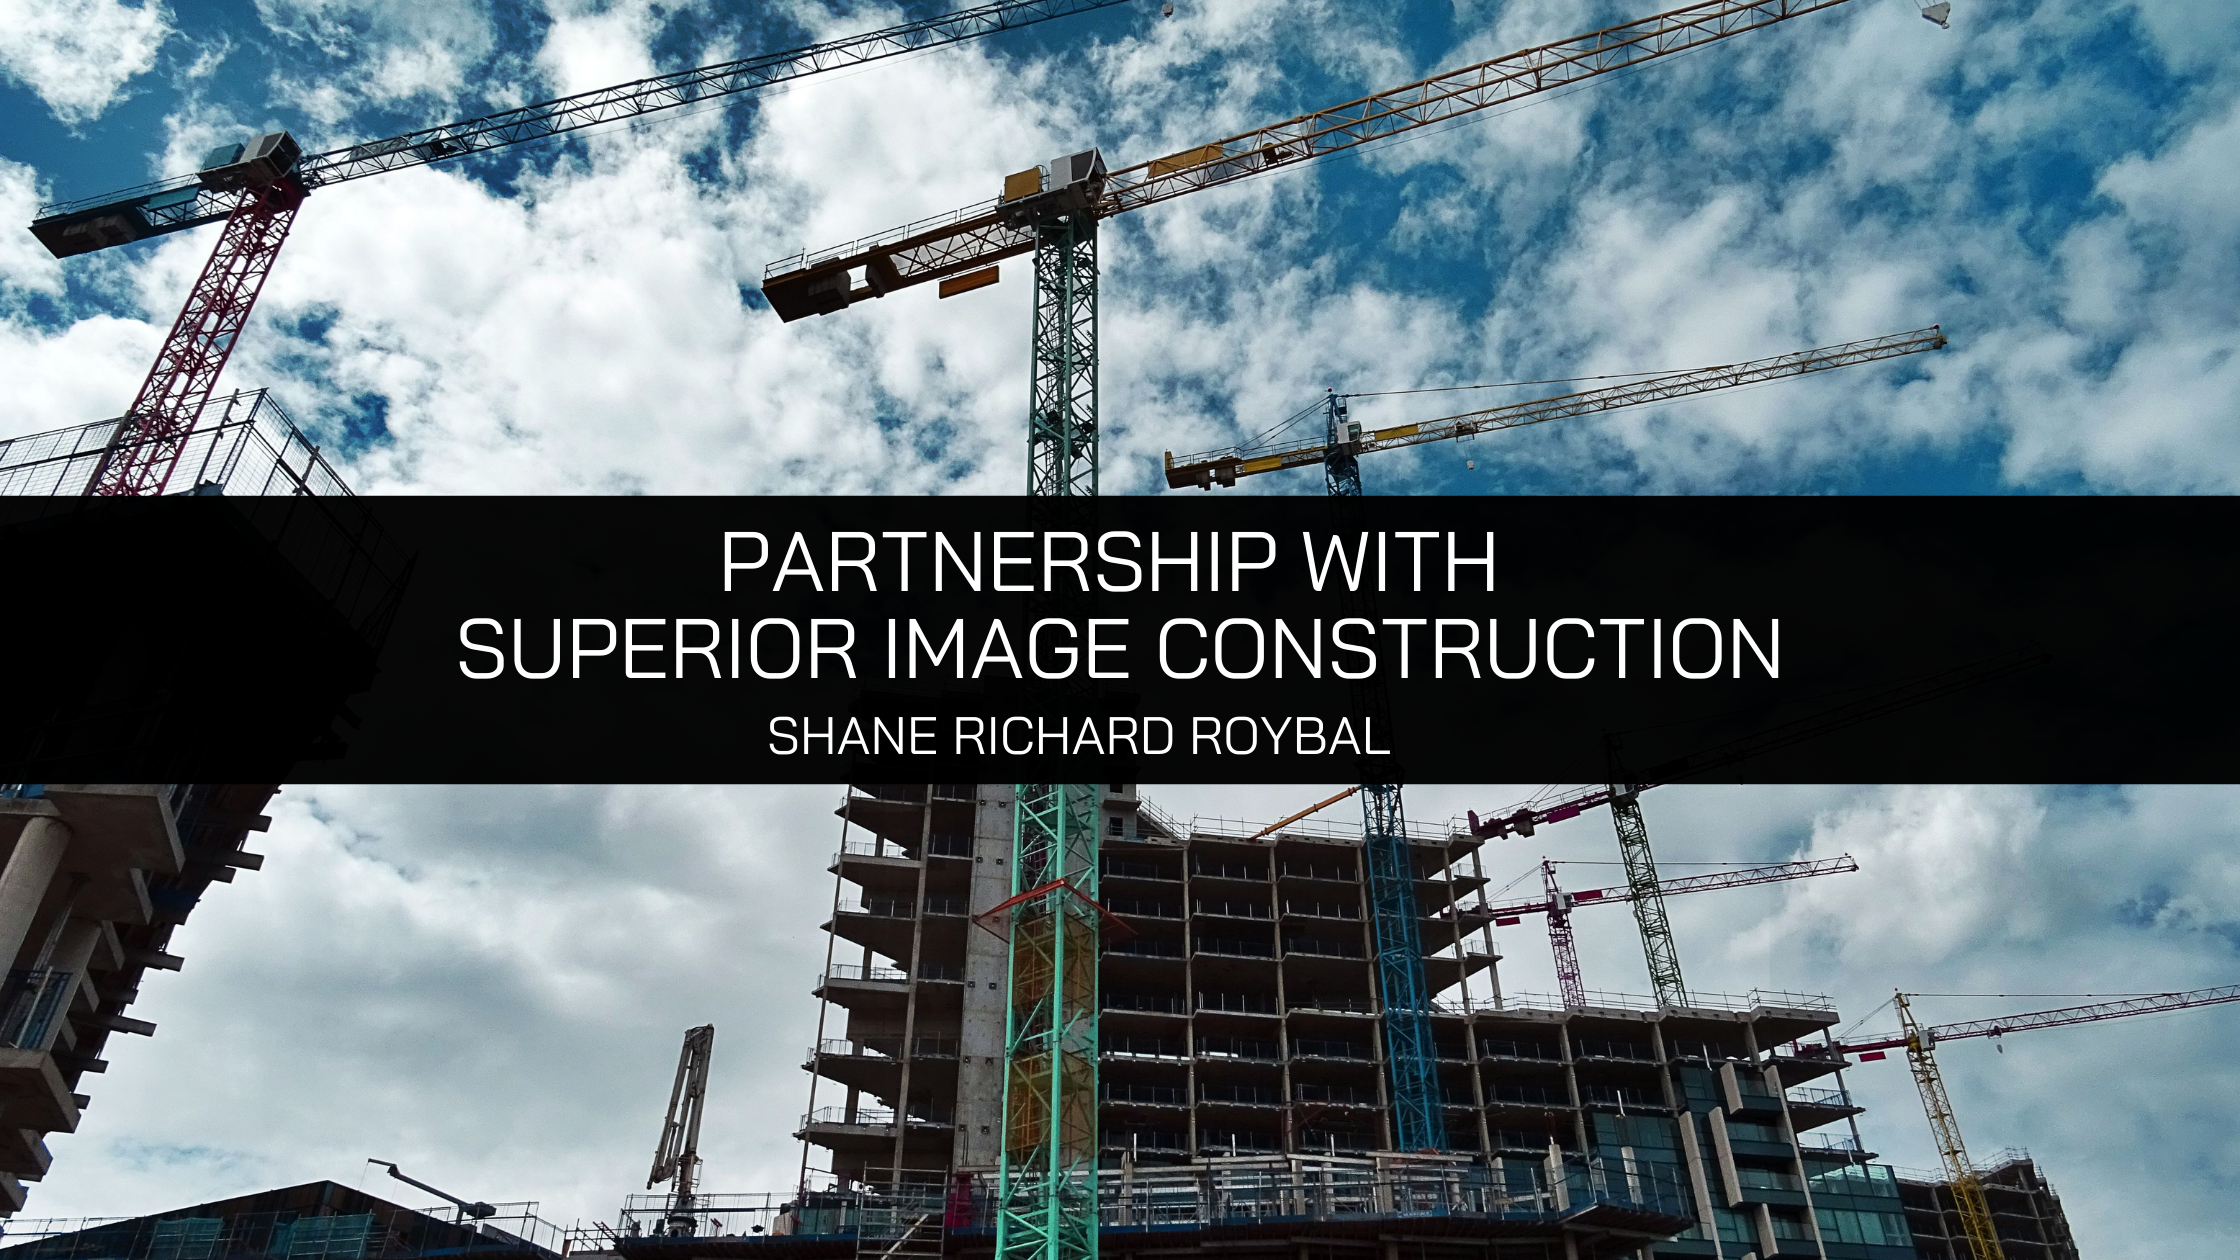 Shane Richard Roybal expands partnership with Superior Image Construction, forming Denver's premier new design-build firm